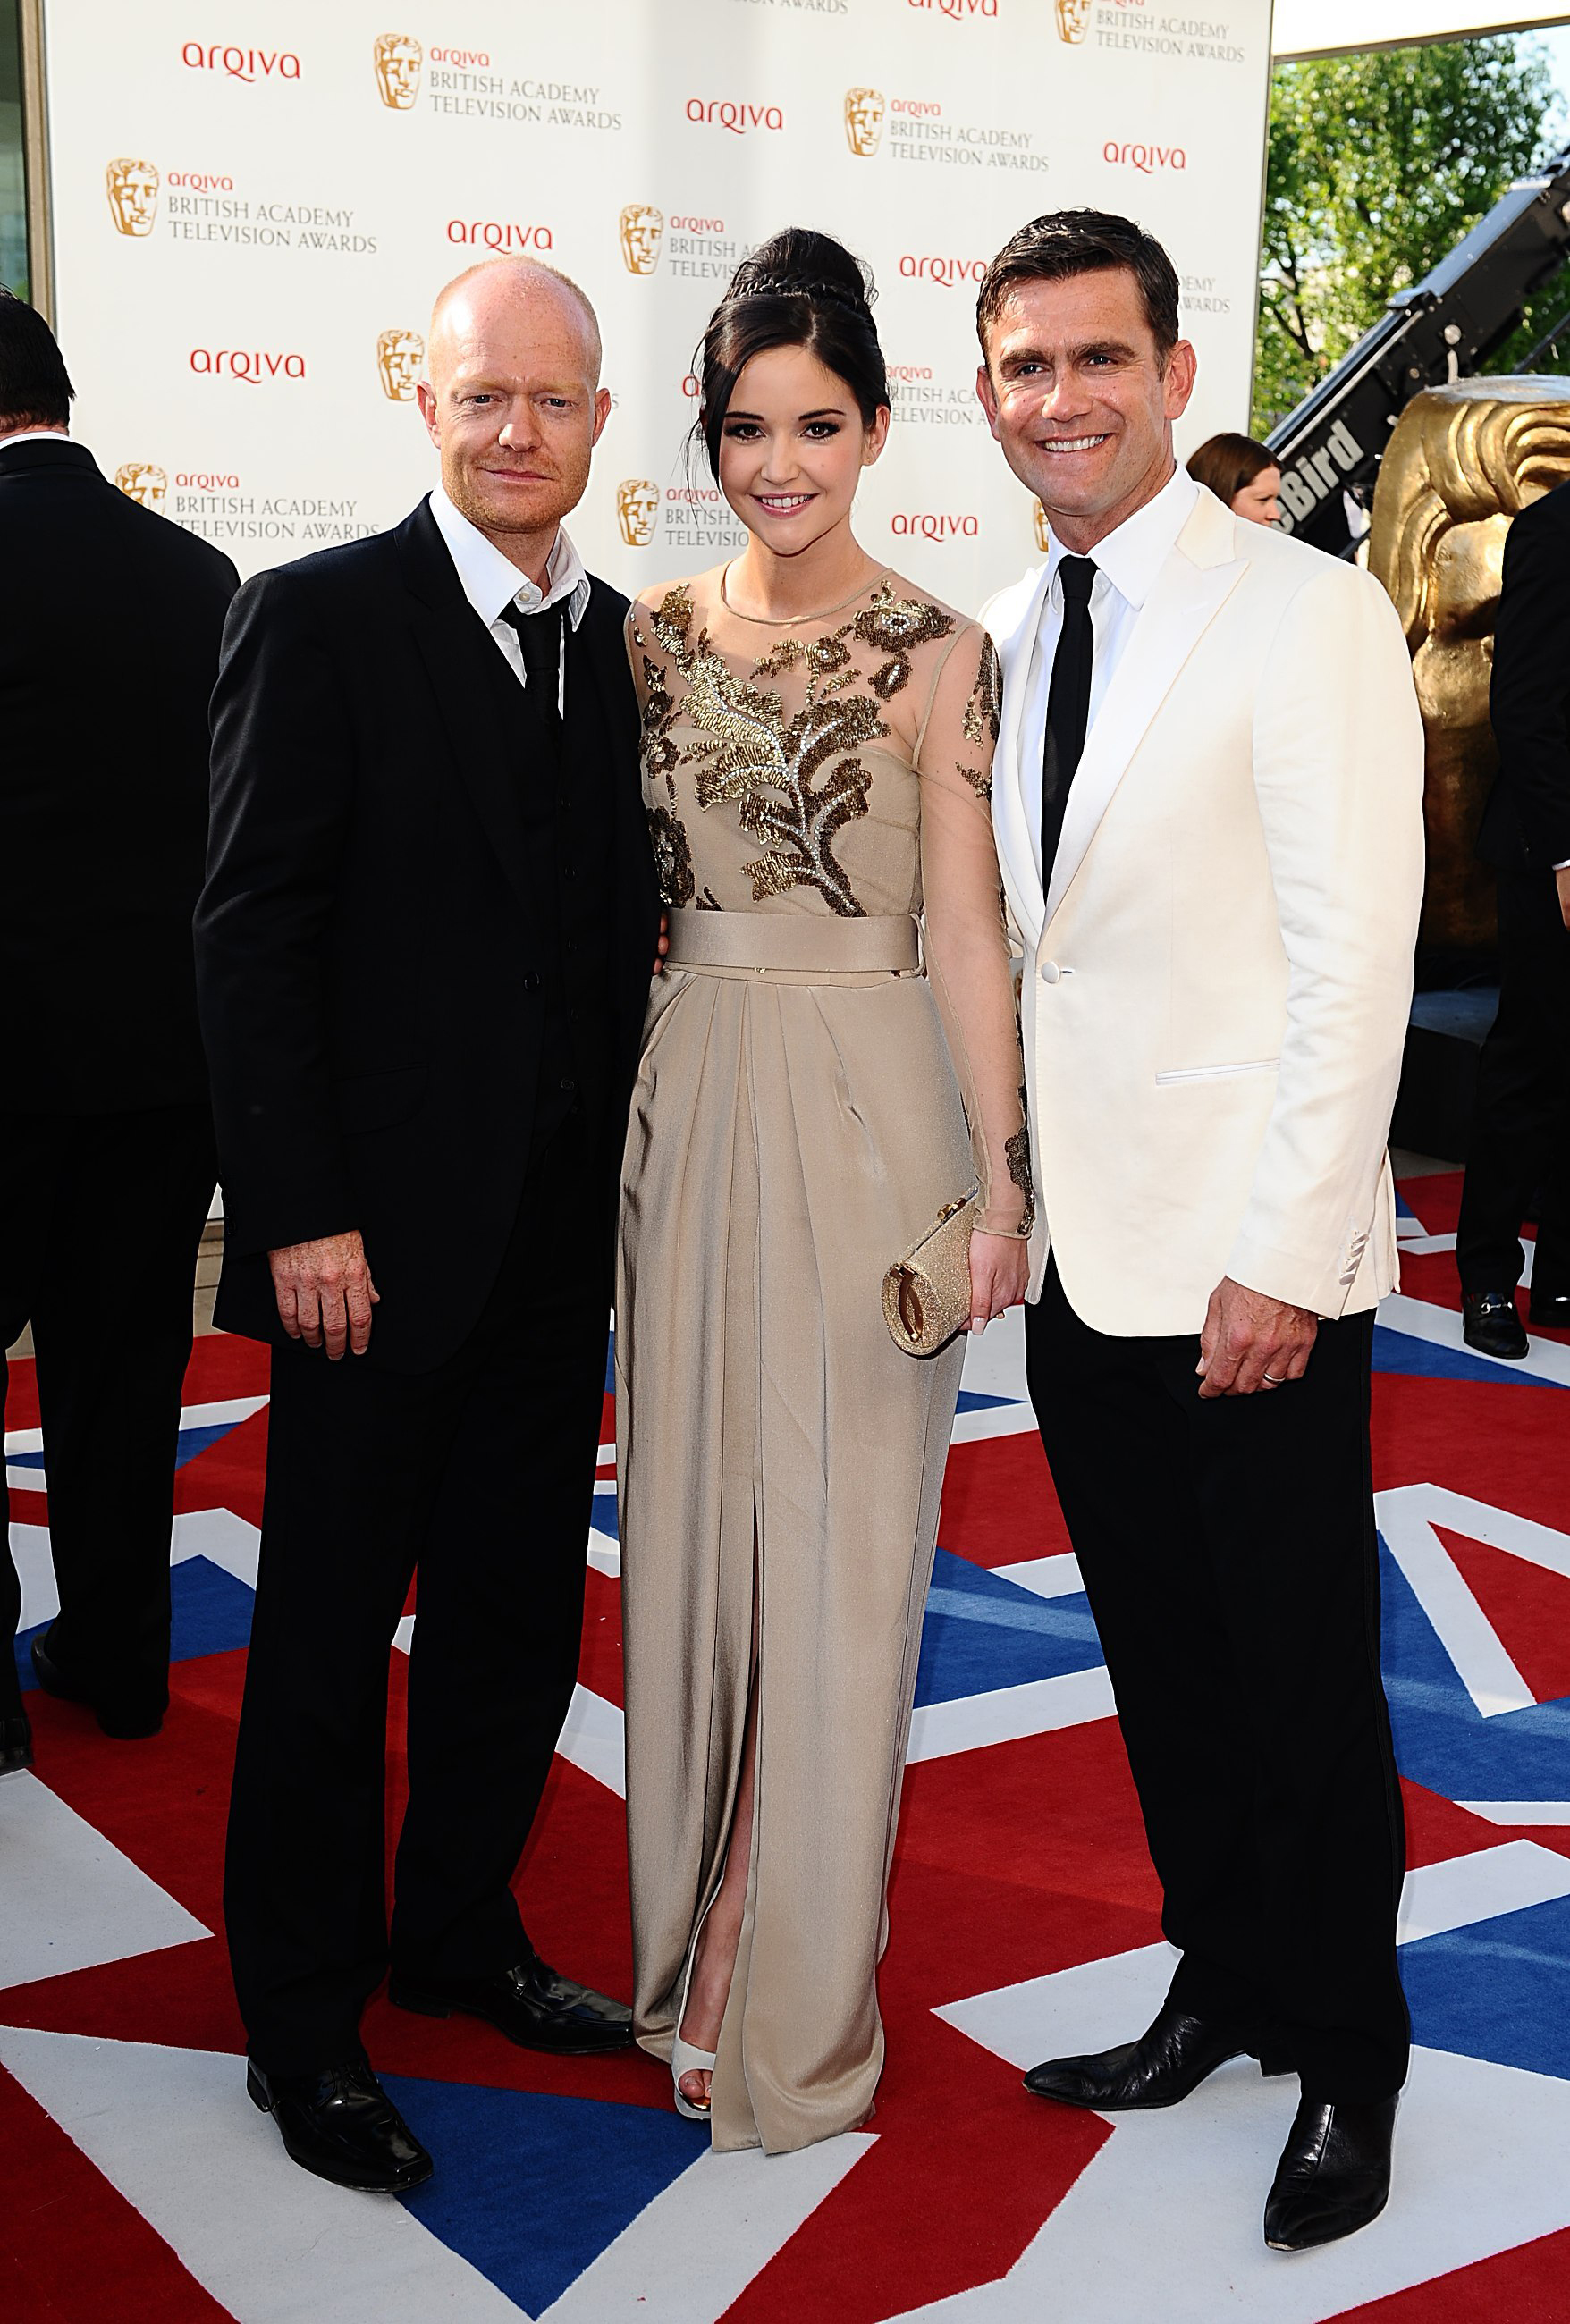 Jacqueline Jossa with (L) Jake Wood, who played her father Max Branning in Eastenders